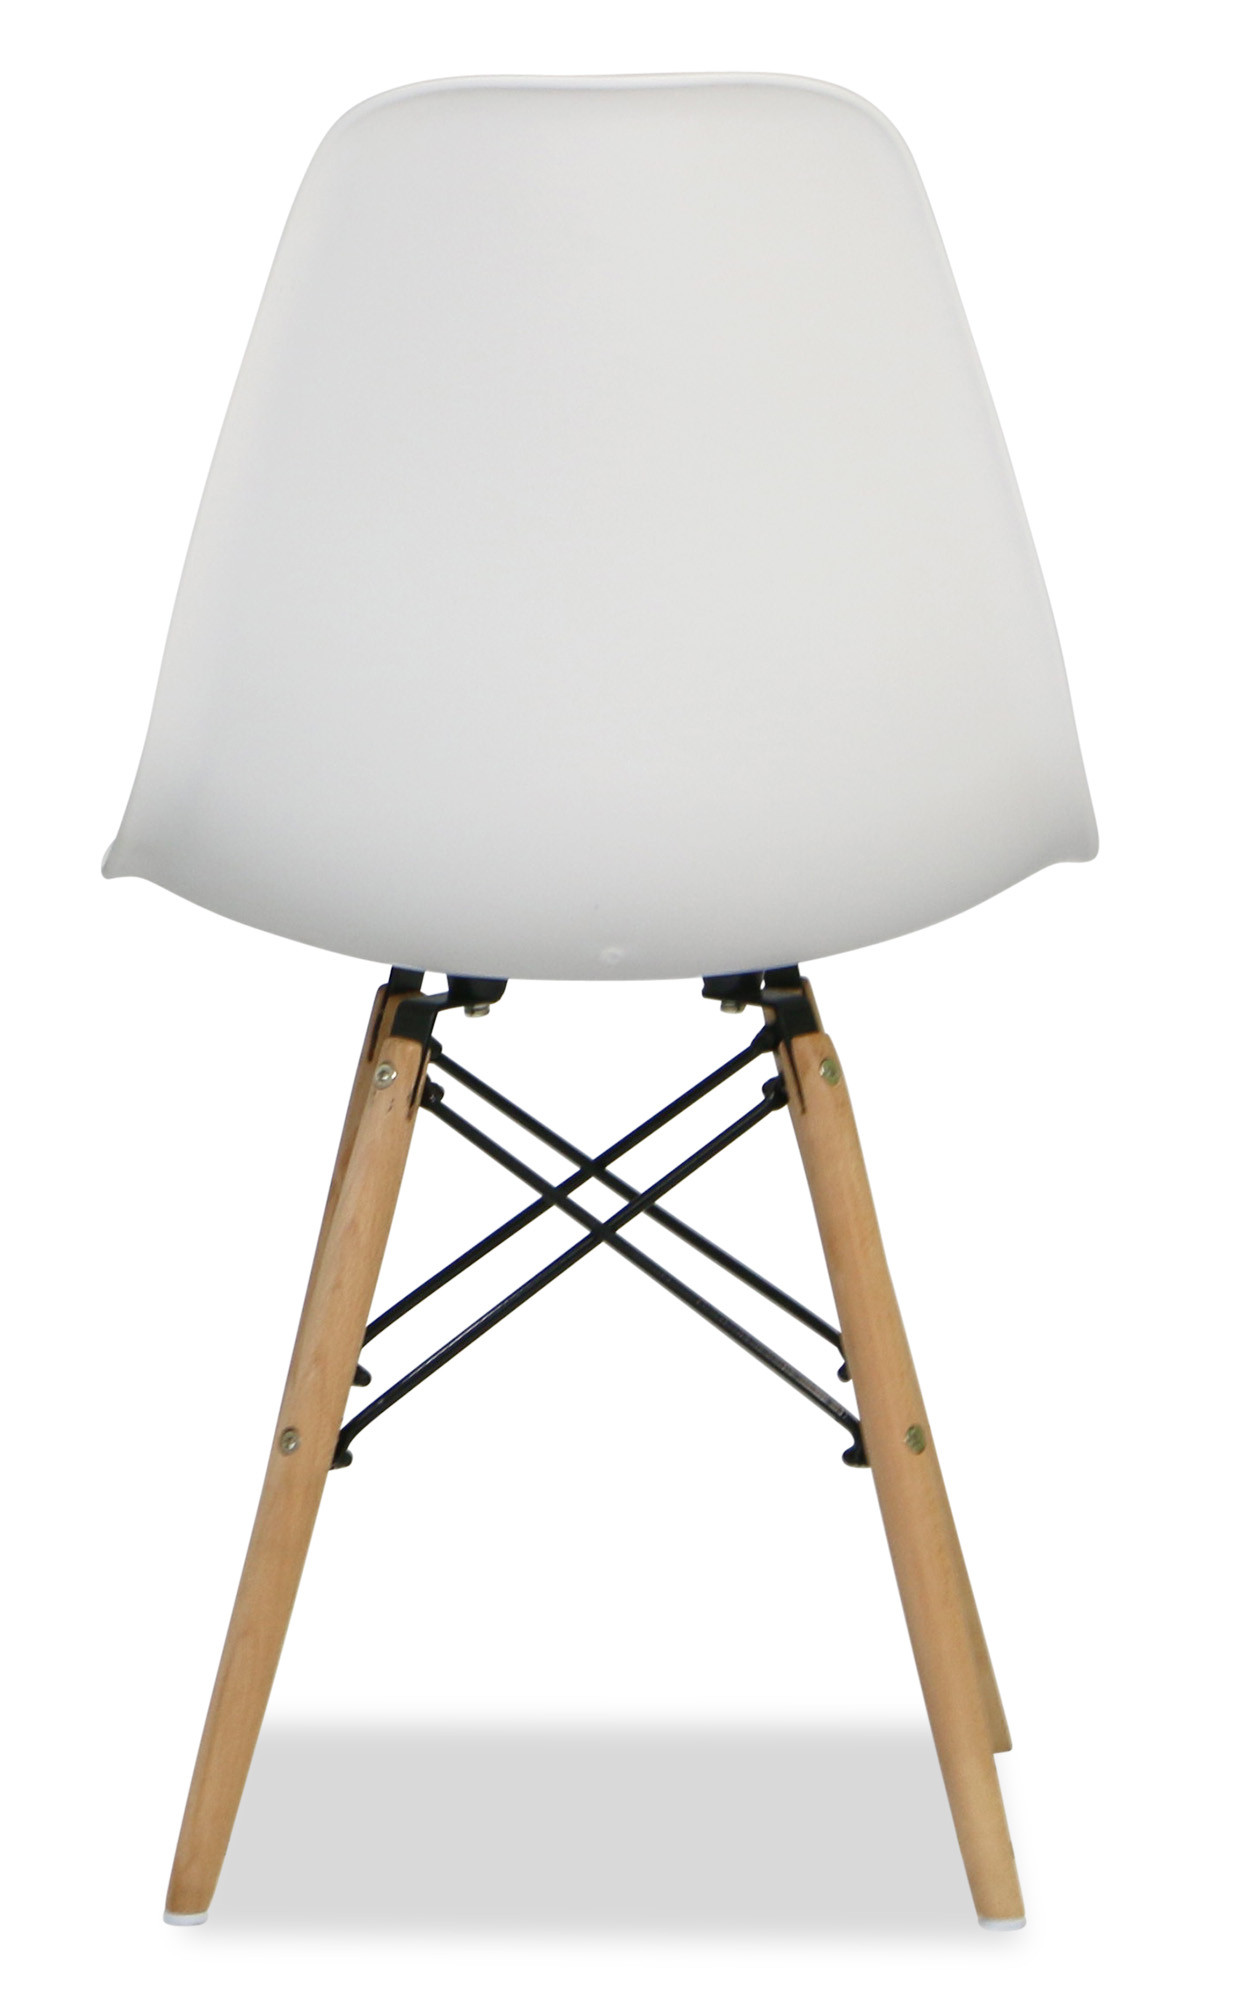 Eames white replica designer chair dining room furniture for Replica designer furniture